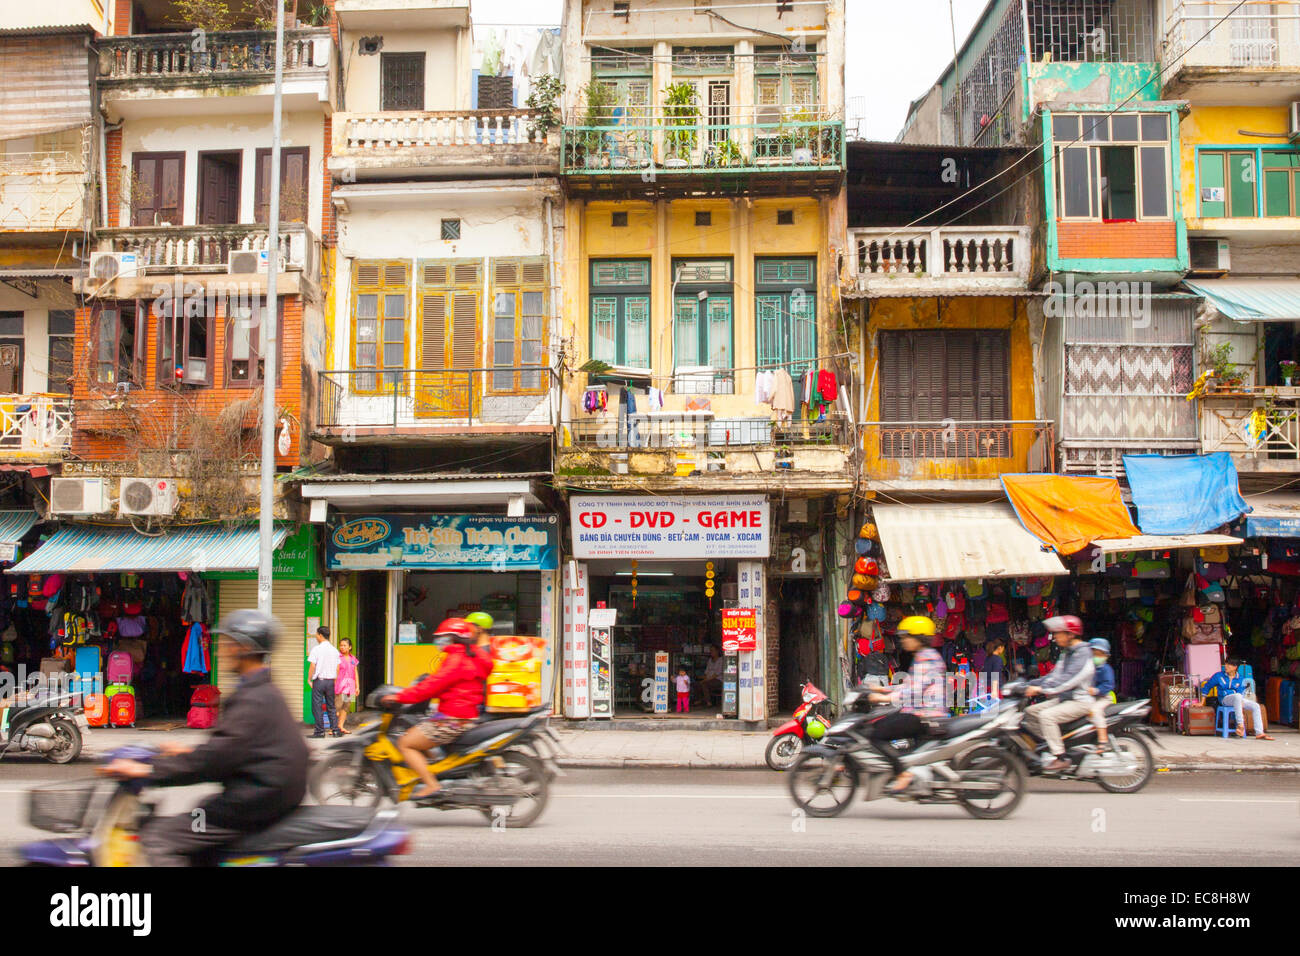 Street scene, old French quarter, Hanoi, Vietnam - Stock Image